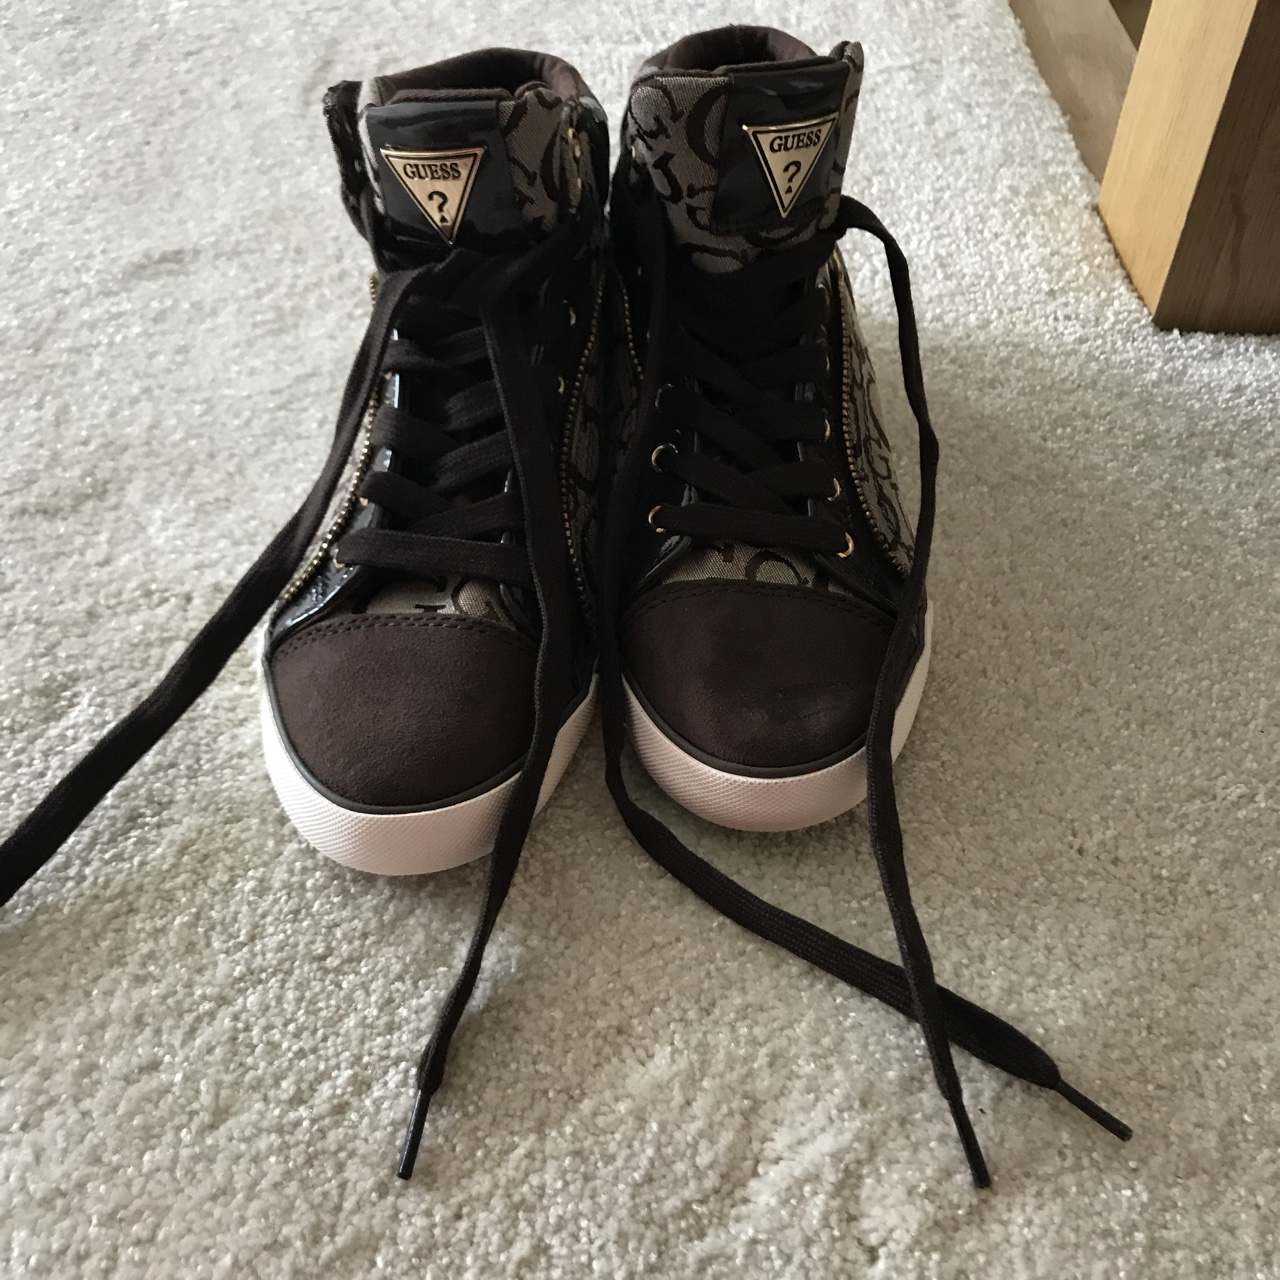 Guess high top trainers size 5 bought